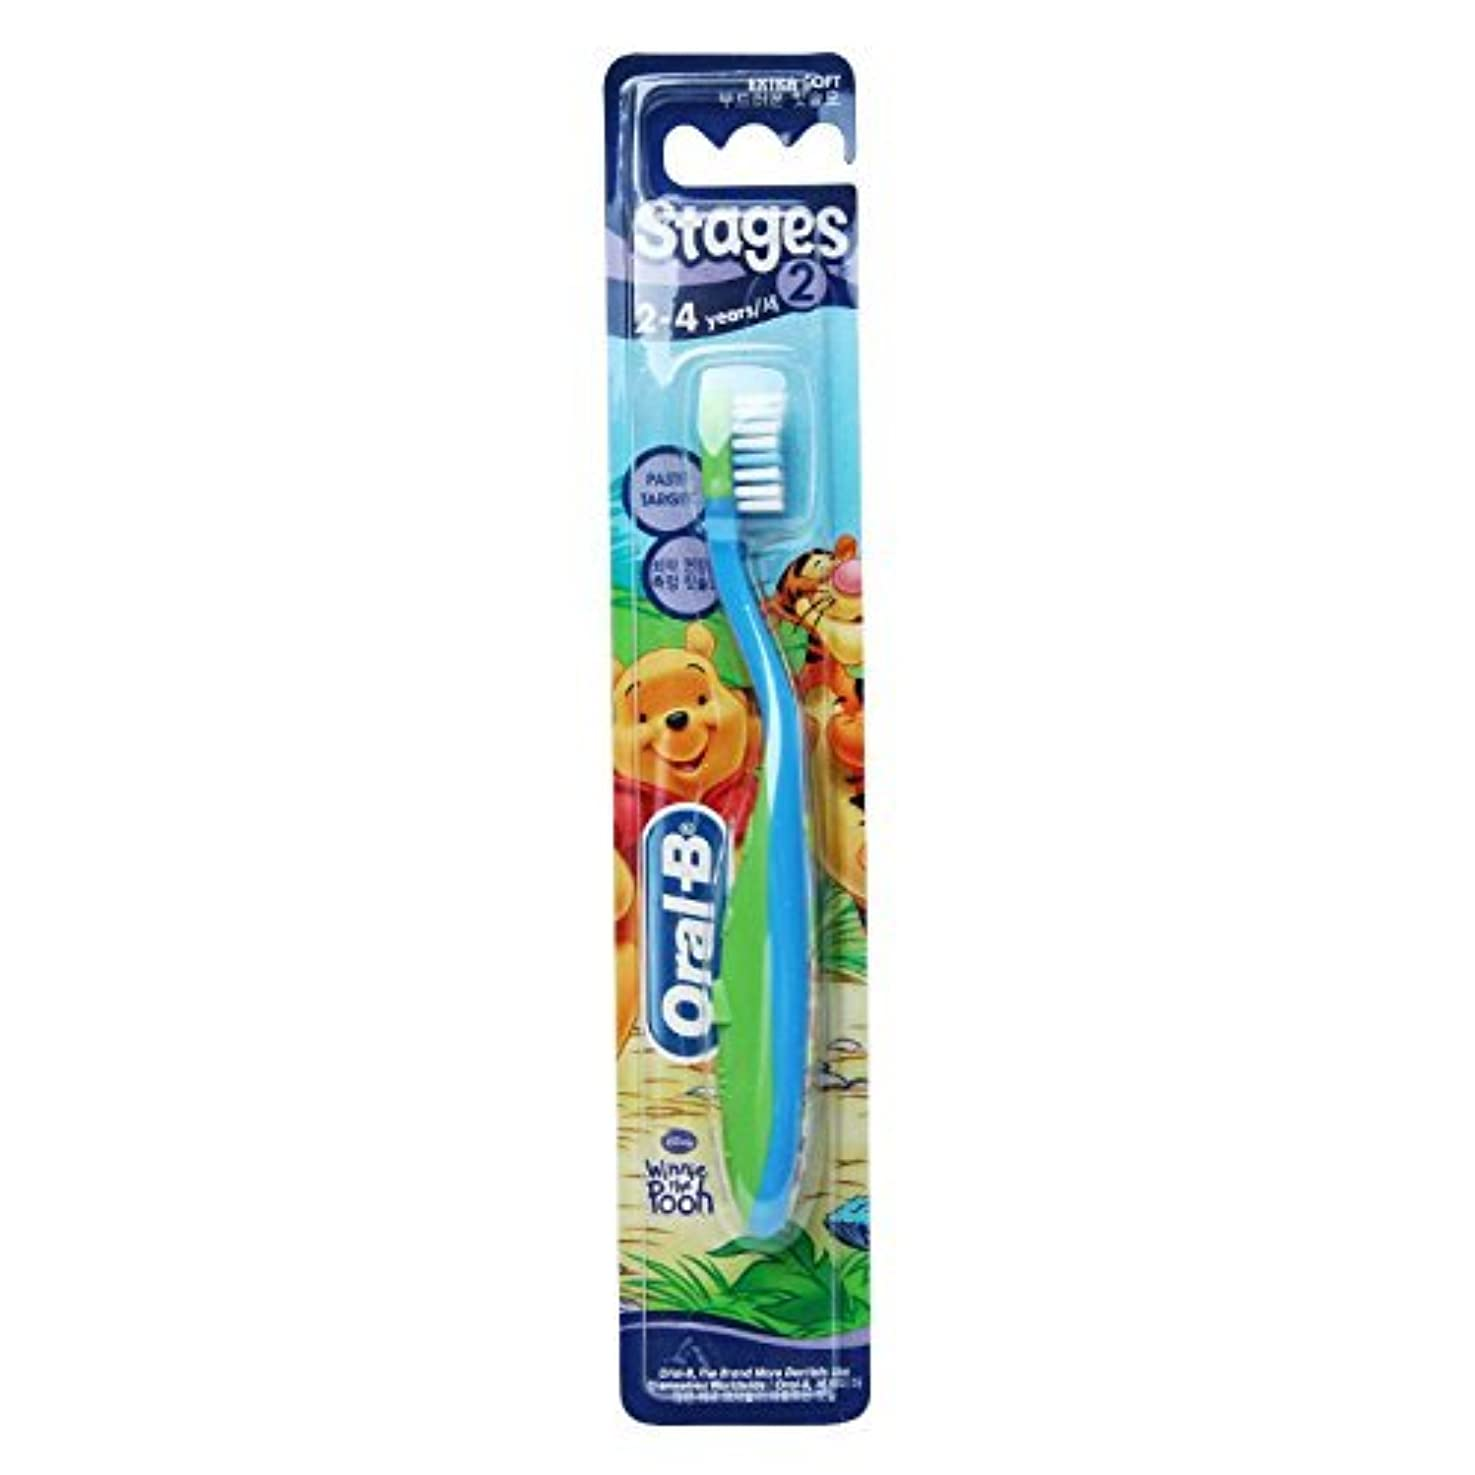 Oral-B Stages 2 Toothbrush 2 - 4 years 1 Pack /GENUINEと元の梱包 [並行輸入品]